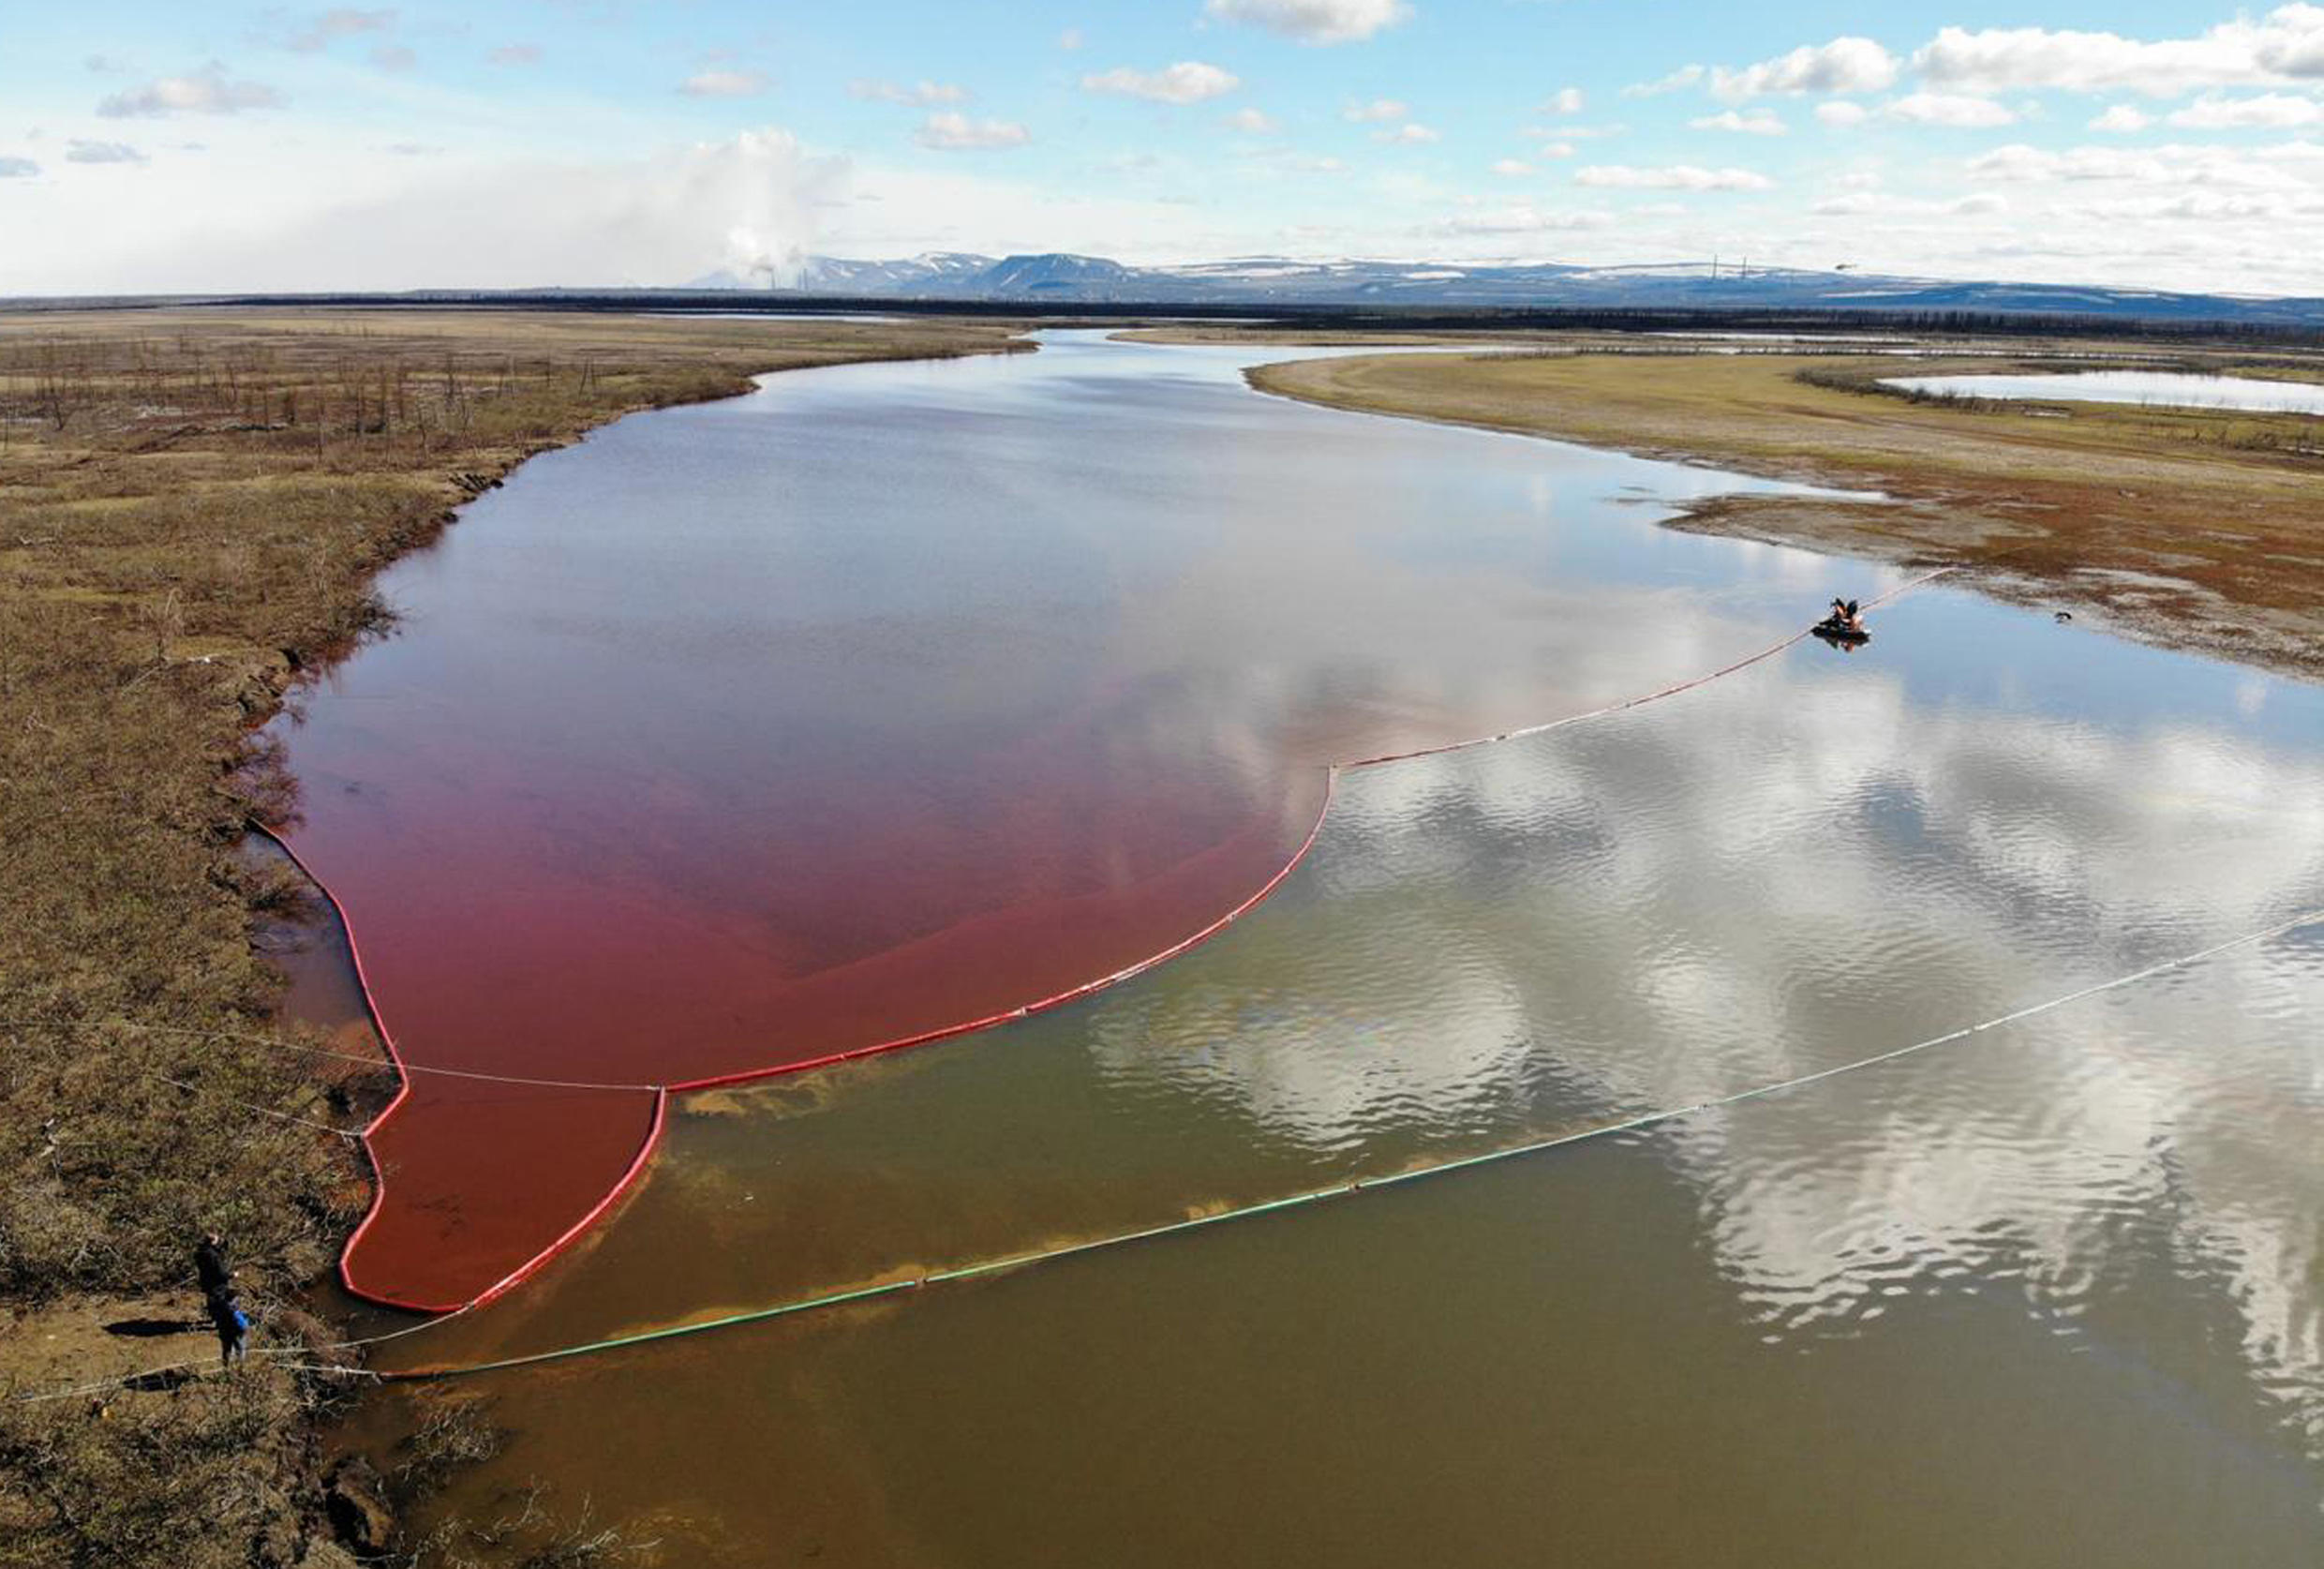 More than 20,000 tonnes of diesel fuel has spilled into the Ambarnaya river in Siberia